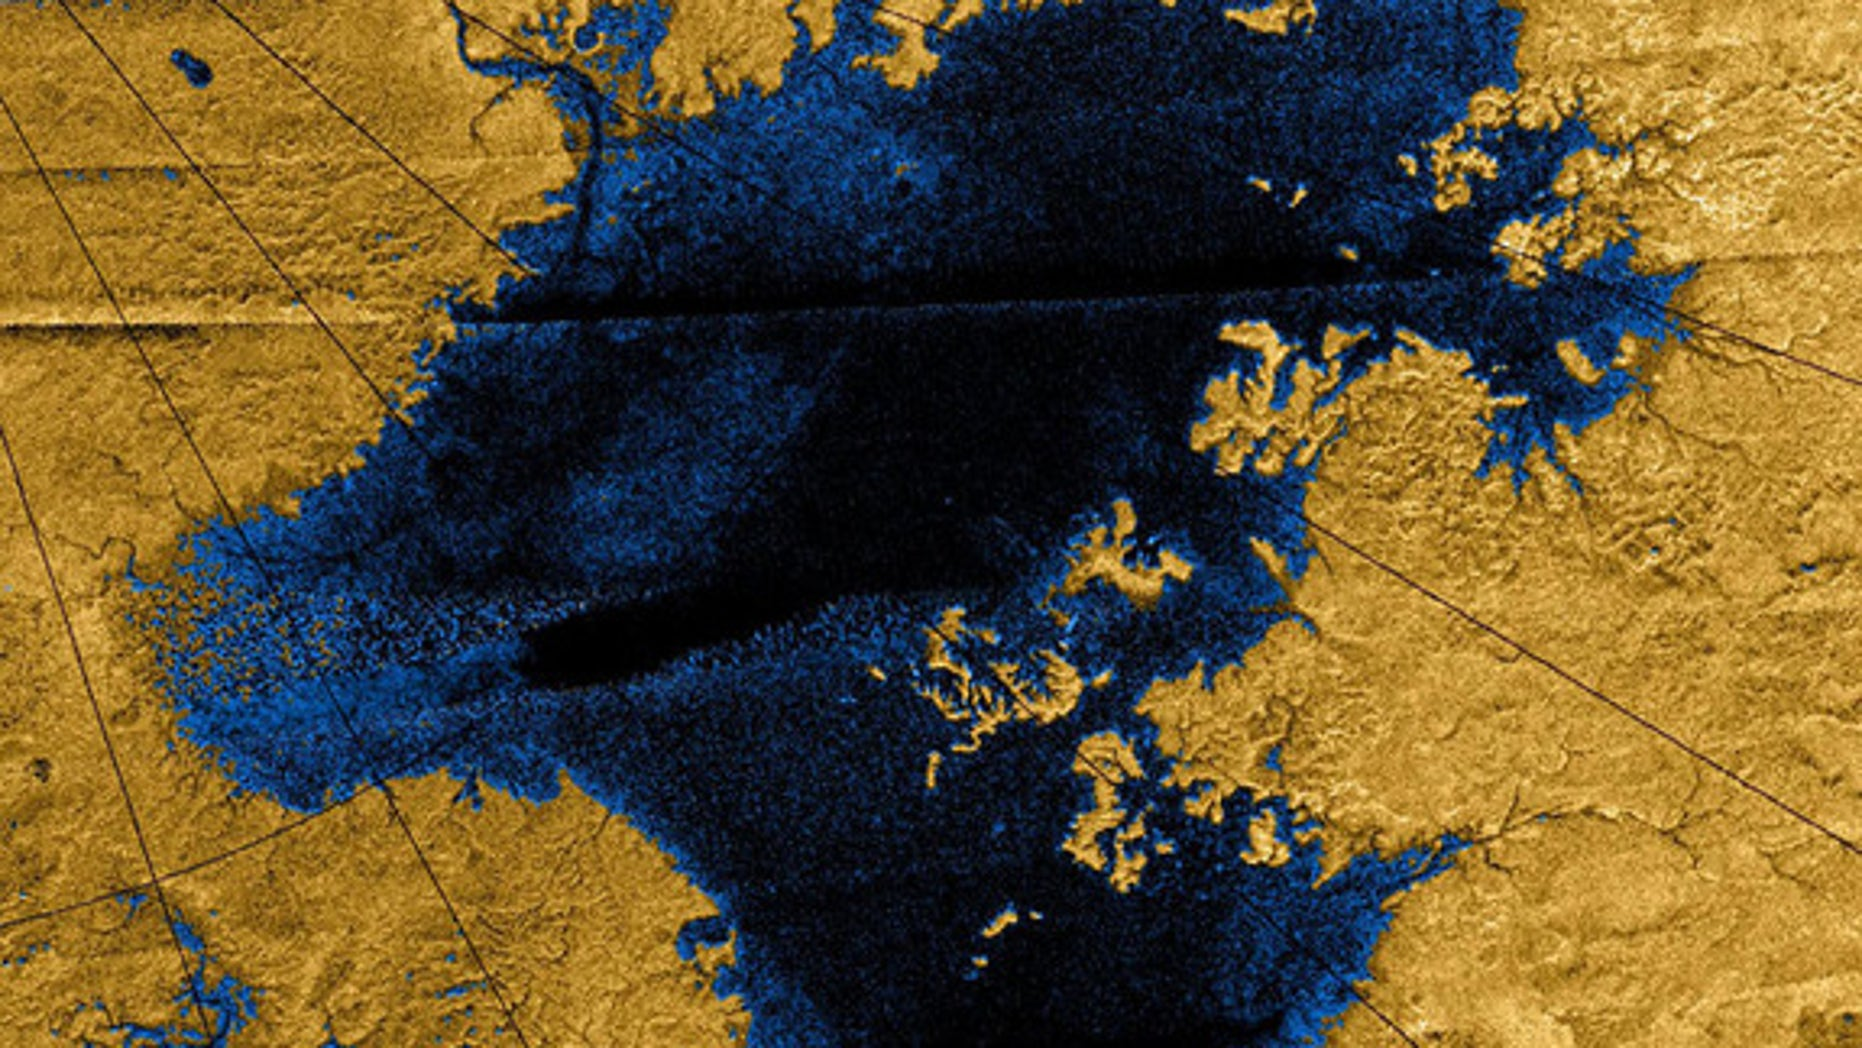 Images from NASA's Cassini mission show river networks draining into lakes in Titan's north polar region.